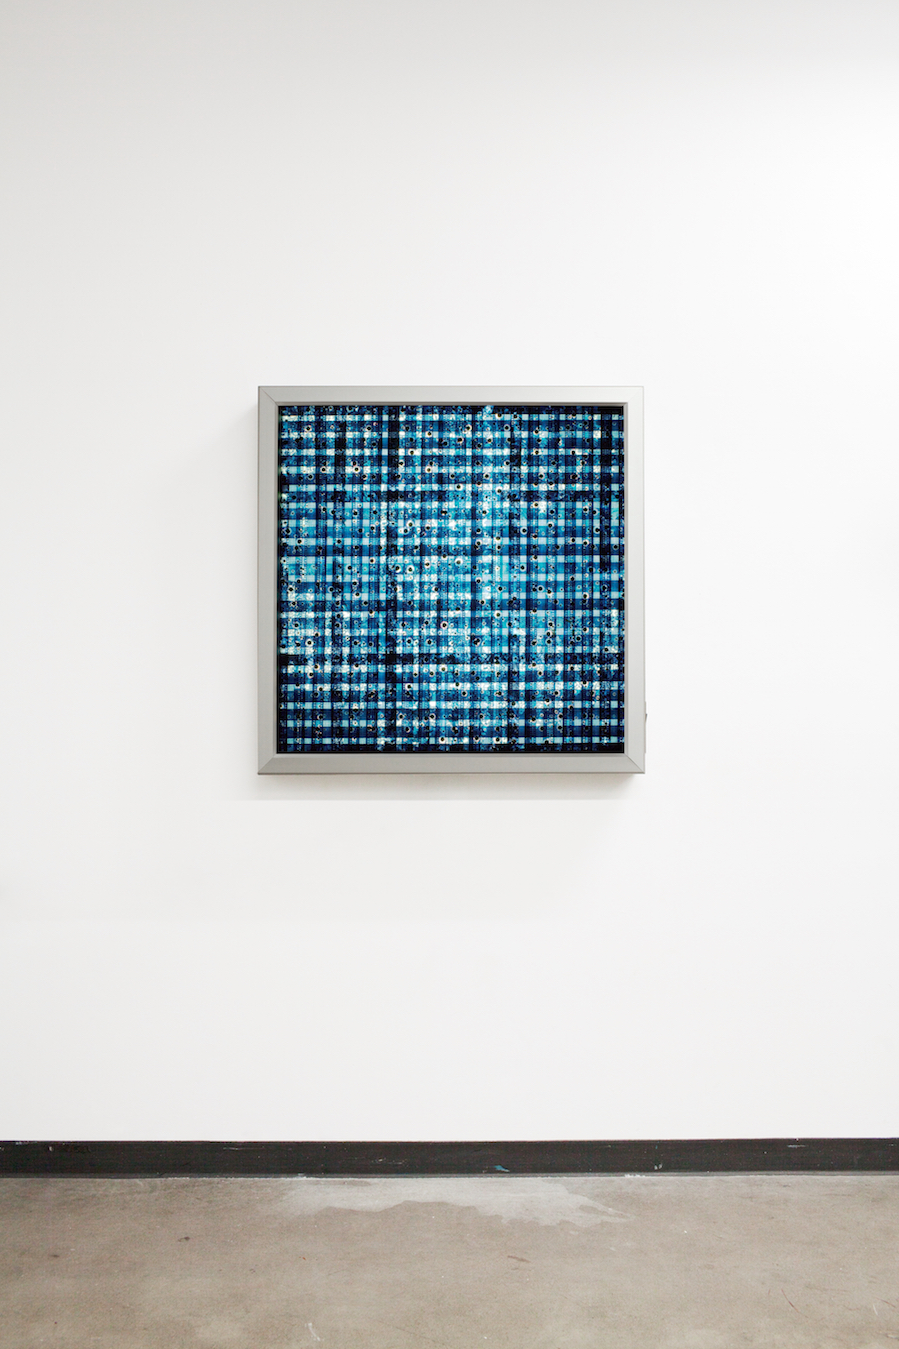 Drill Blue (Woven). 35mm Celluloid Film, Fluorescent Lights, Custom Lightbox. 30x30x6. Richard Kerr. 2016.